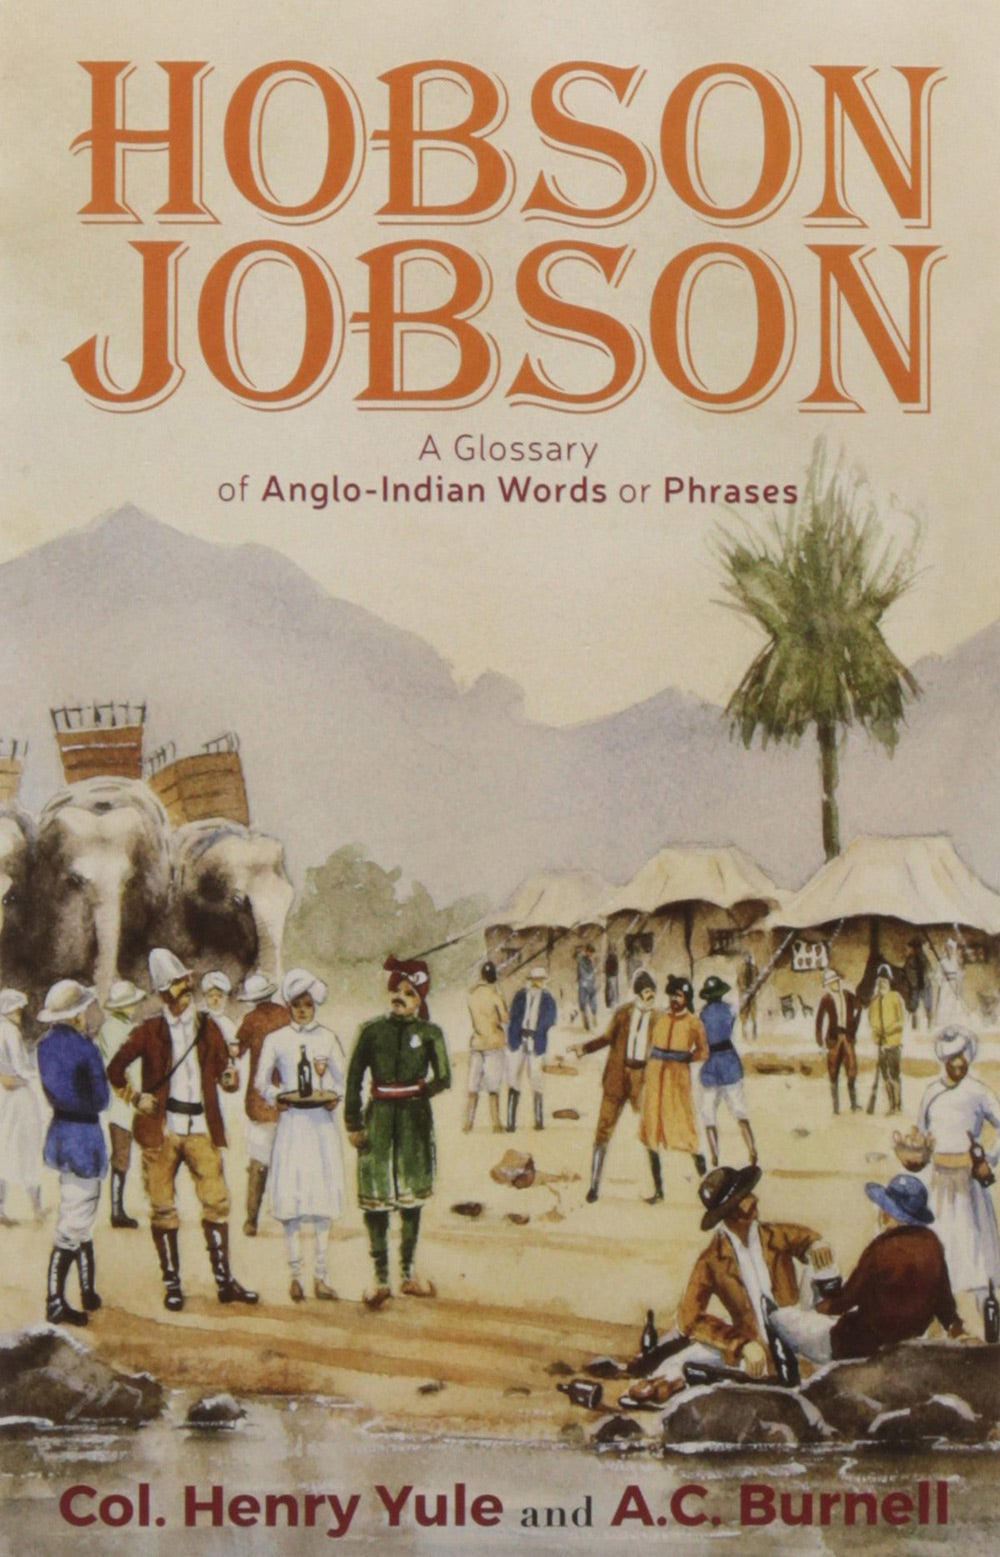 Hobson Jobson: A Glossary of Anglo-Indian Words or Phrases and of Kindred Terms Etymological, Historical Geographical and Discursive